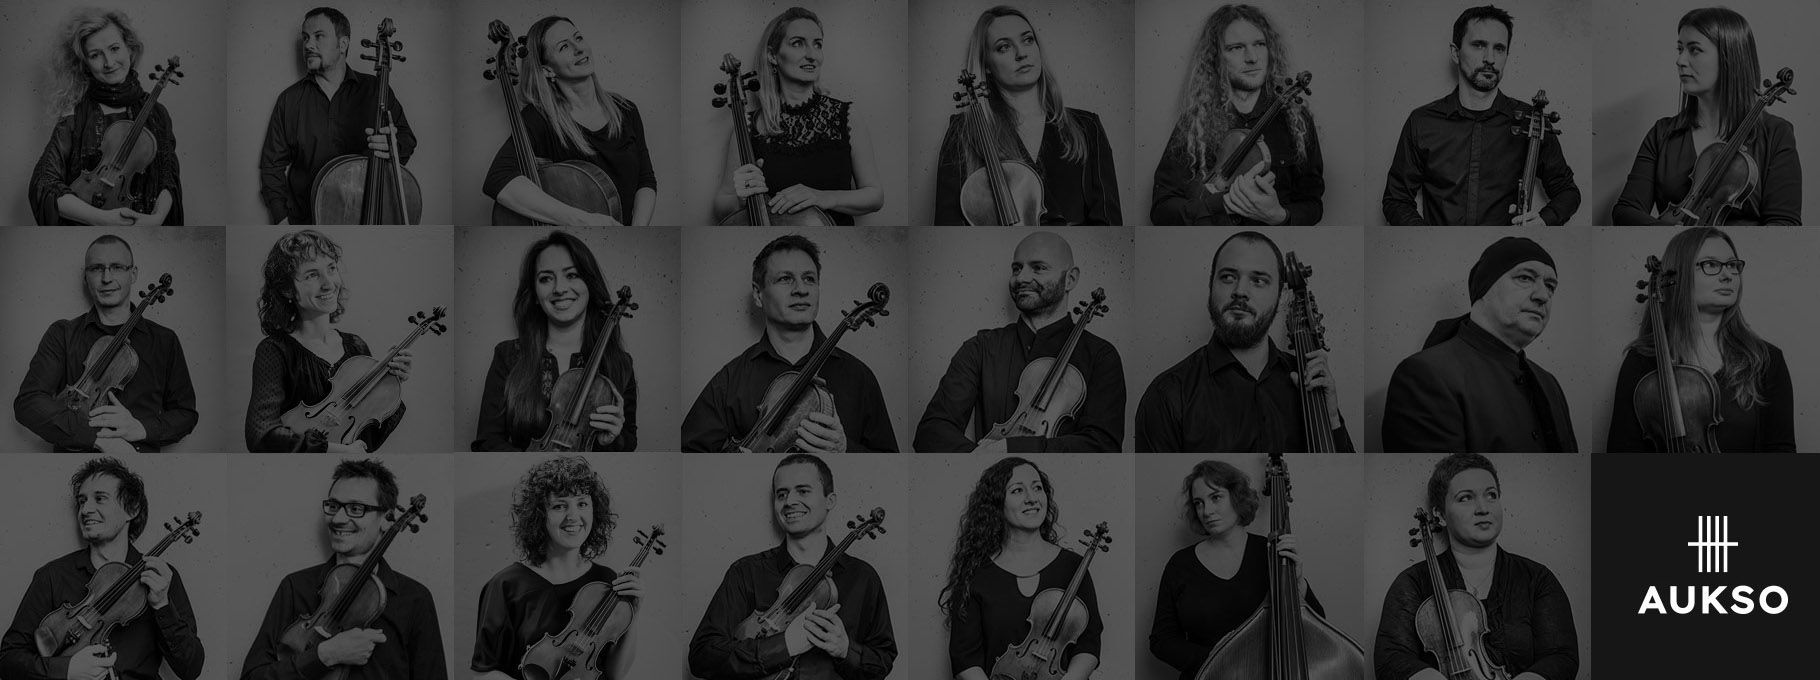 AUKSO – CHAMBER ORCHESTRA OF THE CITY OF TYCHY